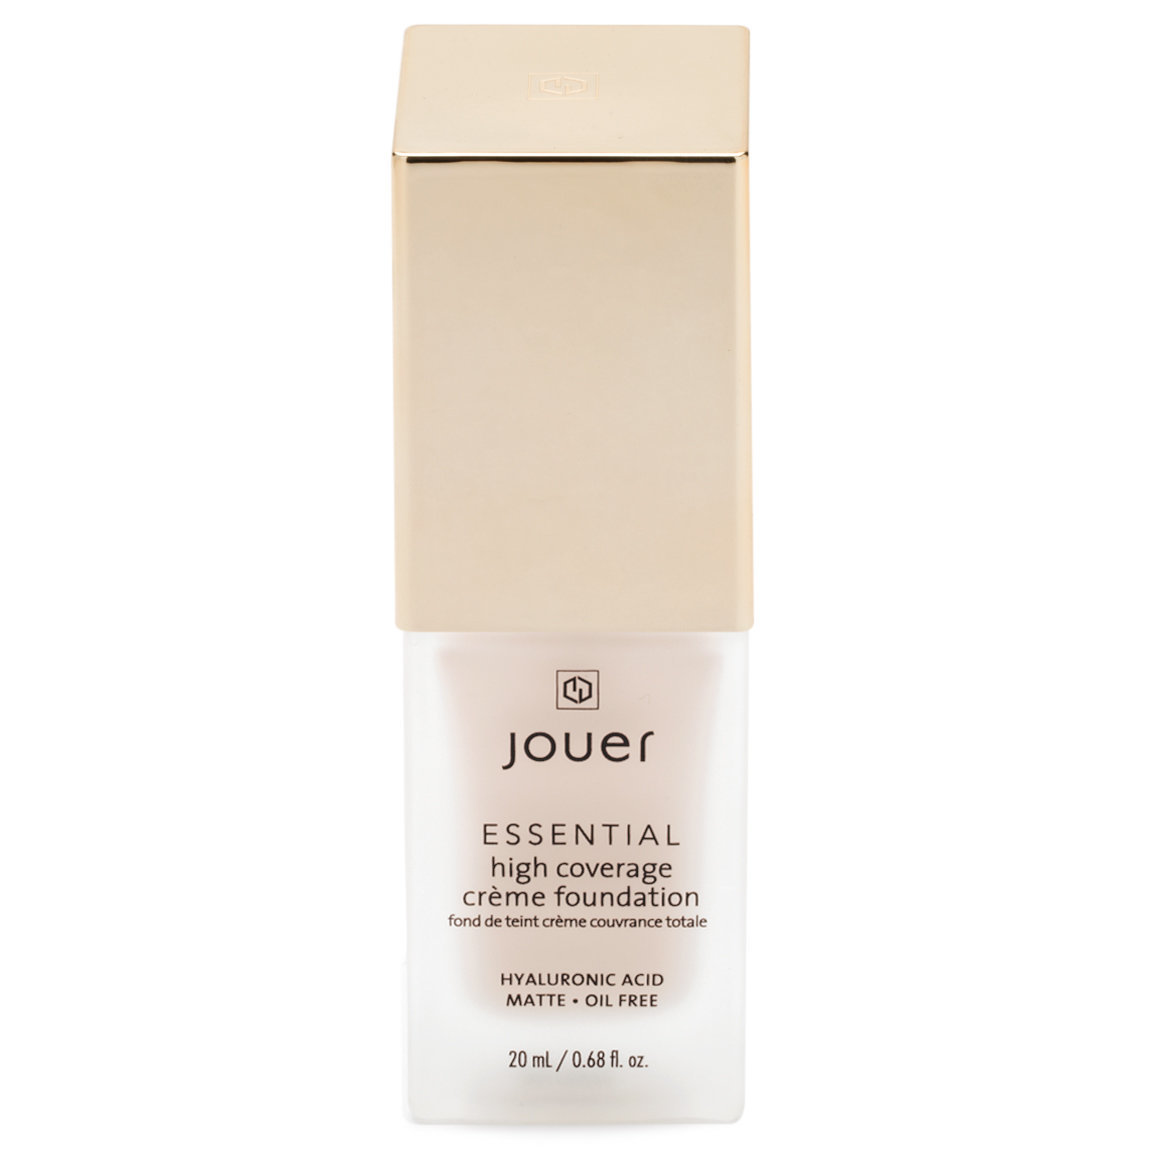 Jouer Cosmetics Essential High Coverage Crème Foundation Ivory product smear.